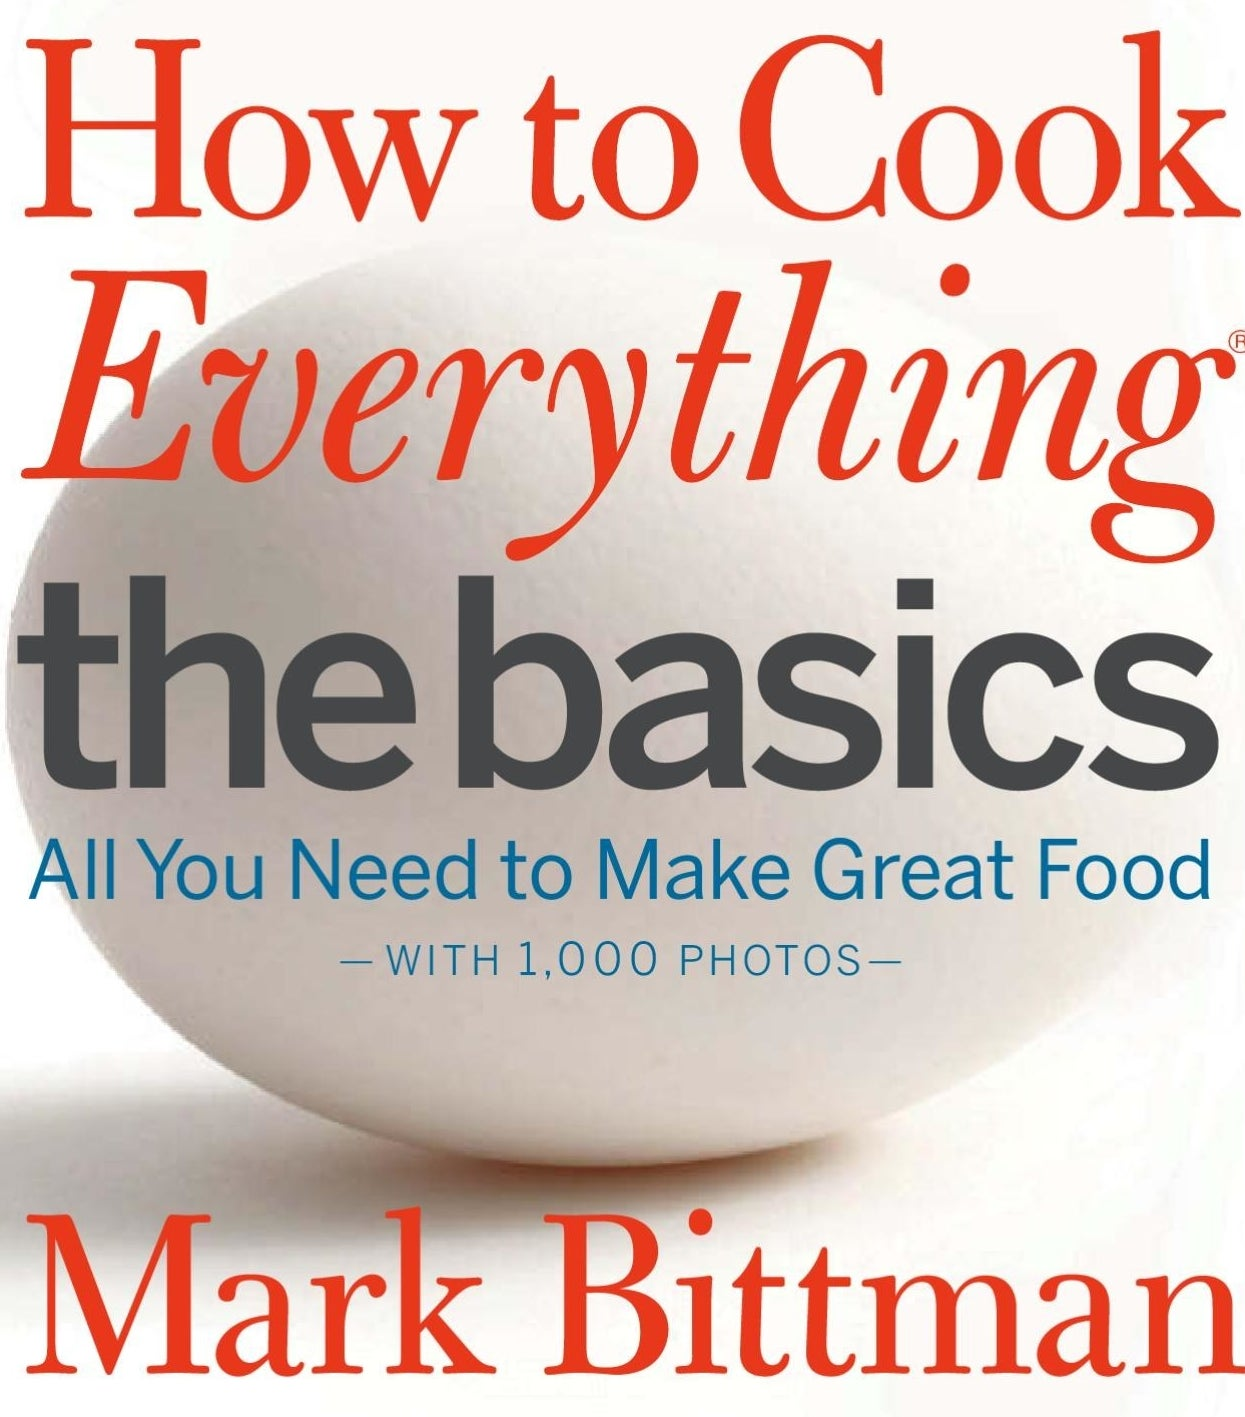 The cover of the book by Mark Bittman